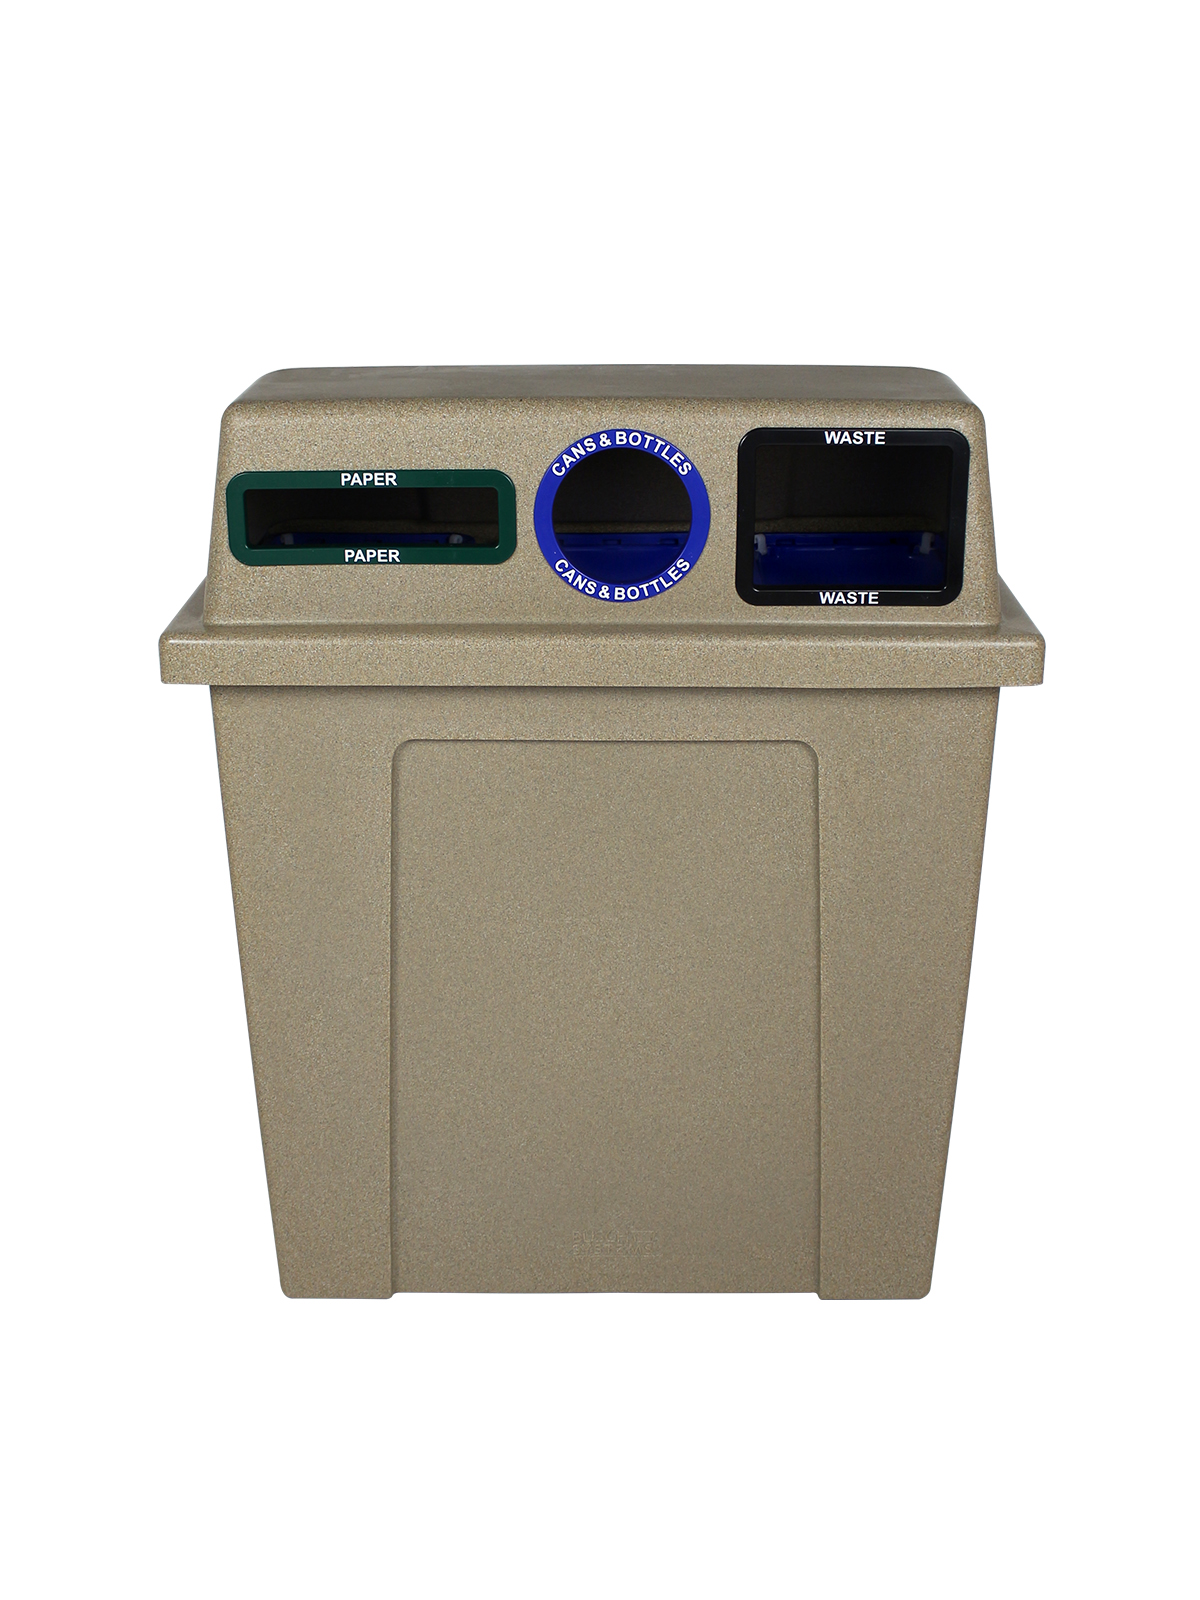 SUPER SORTER - 3-IN-1 HIGH DENSITY - SLOT | CIRCLE | FULL - SANDSTONE - CANS & BOTTLES | PAPER | WASTE title=